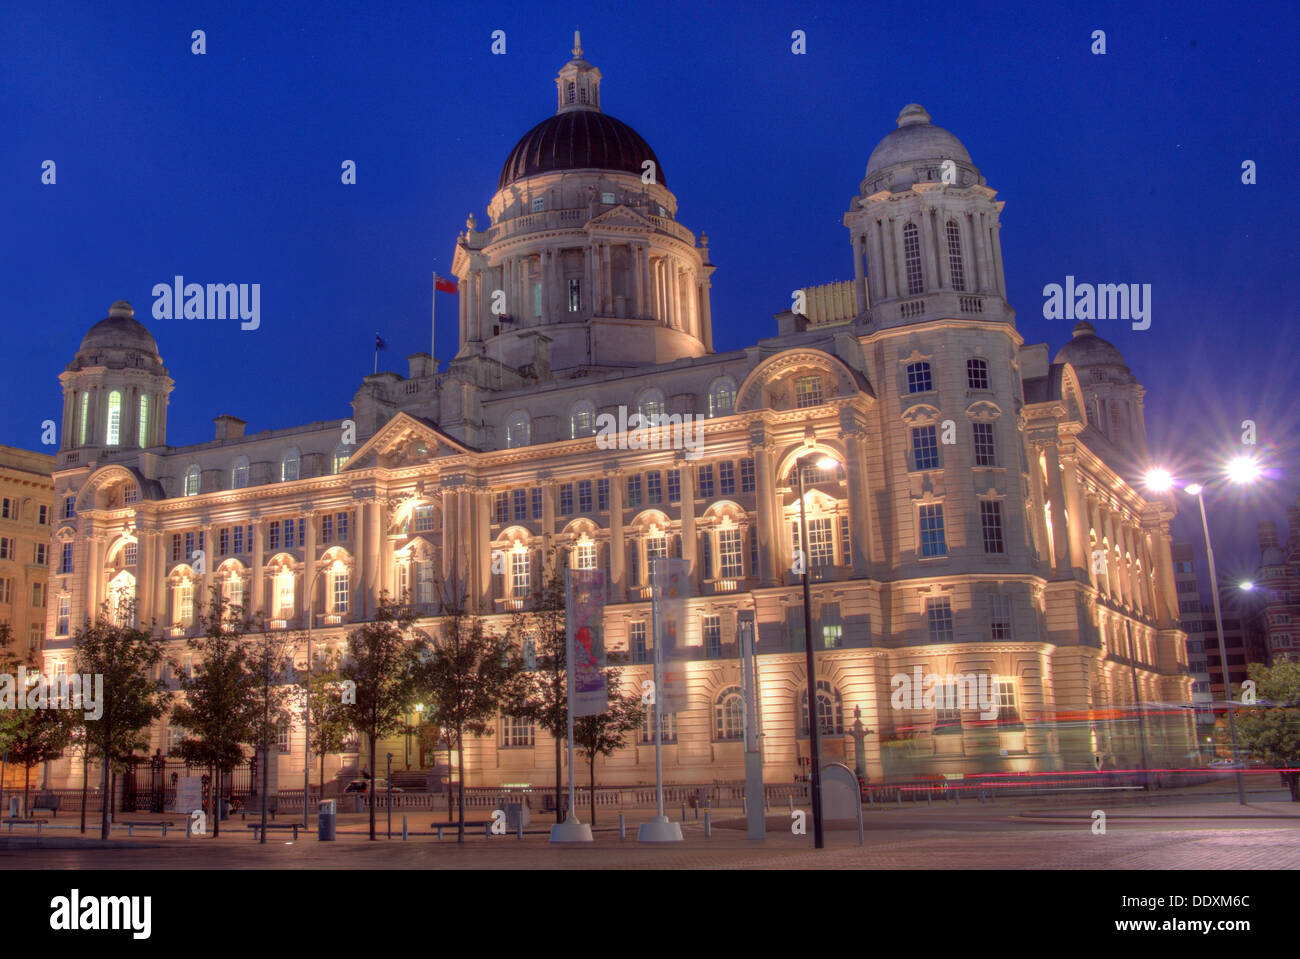 night,time,blue,hour,bluehour,Merseyside,England,UK,GB,Great,Britain,british,English,icons,iconic,River,three,graces,reflection,reflections,L31DL,L3,1DL,area,around,the,Pier,Head,and,Albert,Dock,is,iconic,for,tourists,/,travelers,and,even,more,beautiful,river,riverside,location,3,graces,port,of,gotonysmith,Maritime,Mercantile,City,UNESCO,World,Heritage,city,tour,tourist,tourists,travel,places,to,visit,Buy Pictures of,Buy Images Of